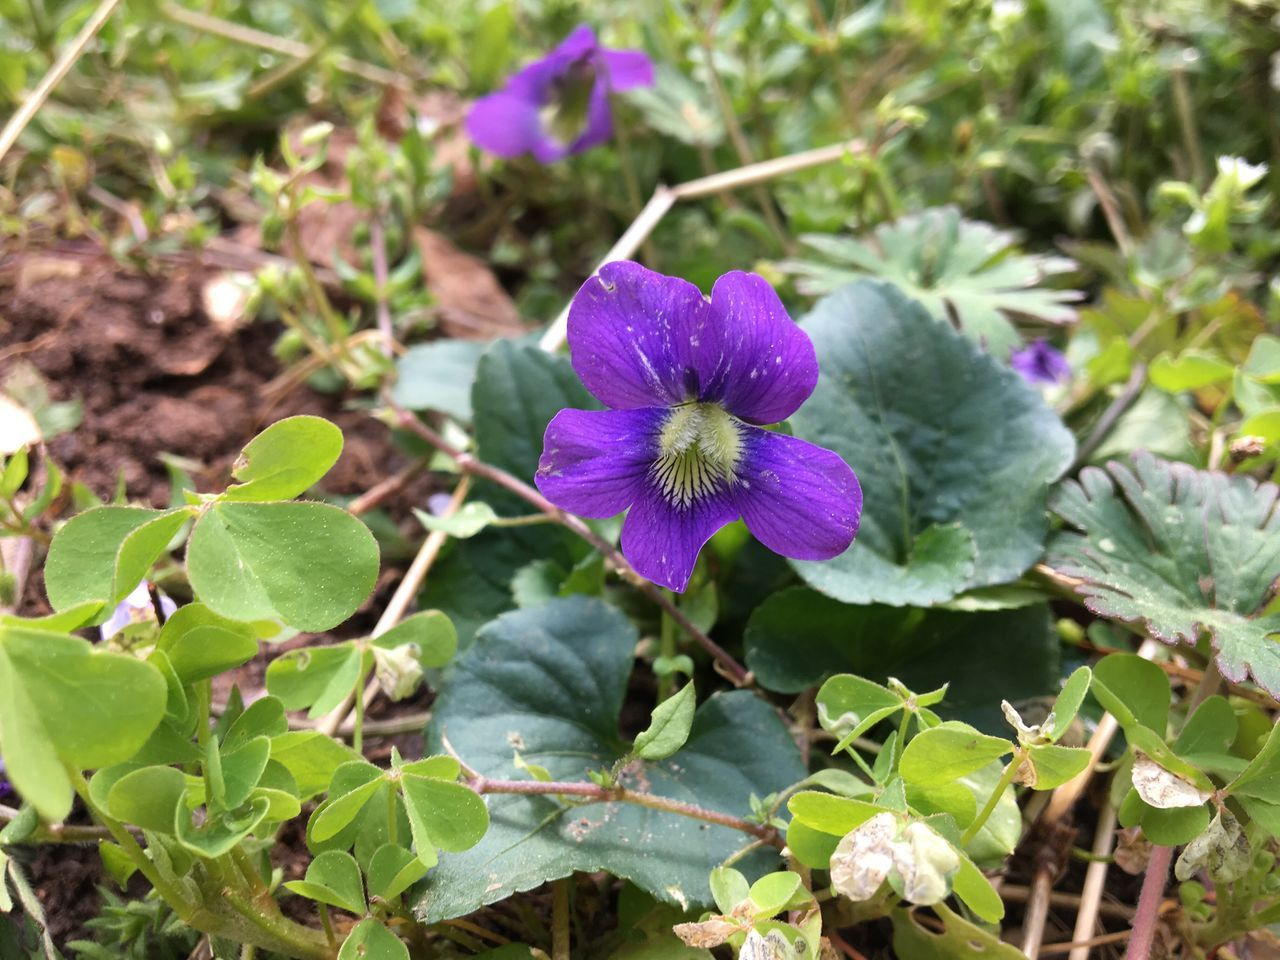 Spring Violet Flower Purple Nature Growth Fragility Freshness Beauty In Nature Petal Blooming Plant Flower Head Leaf Outdoors Close-up No People Day Violet Viola Spring Flowers Spring